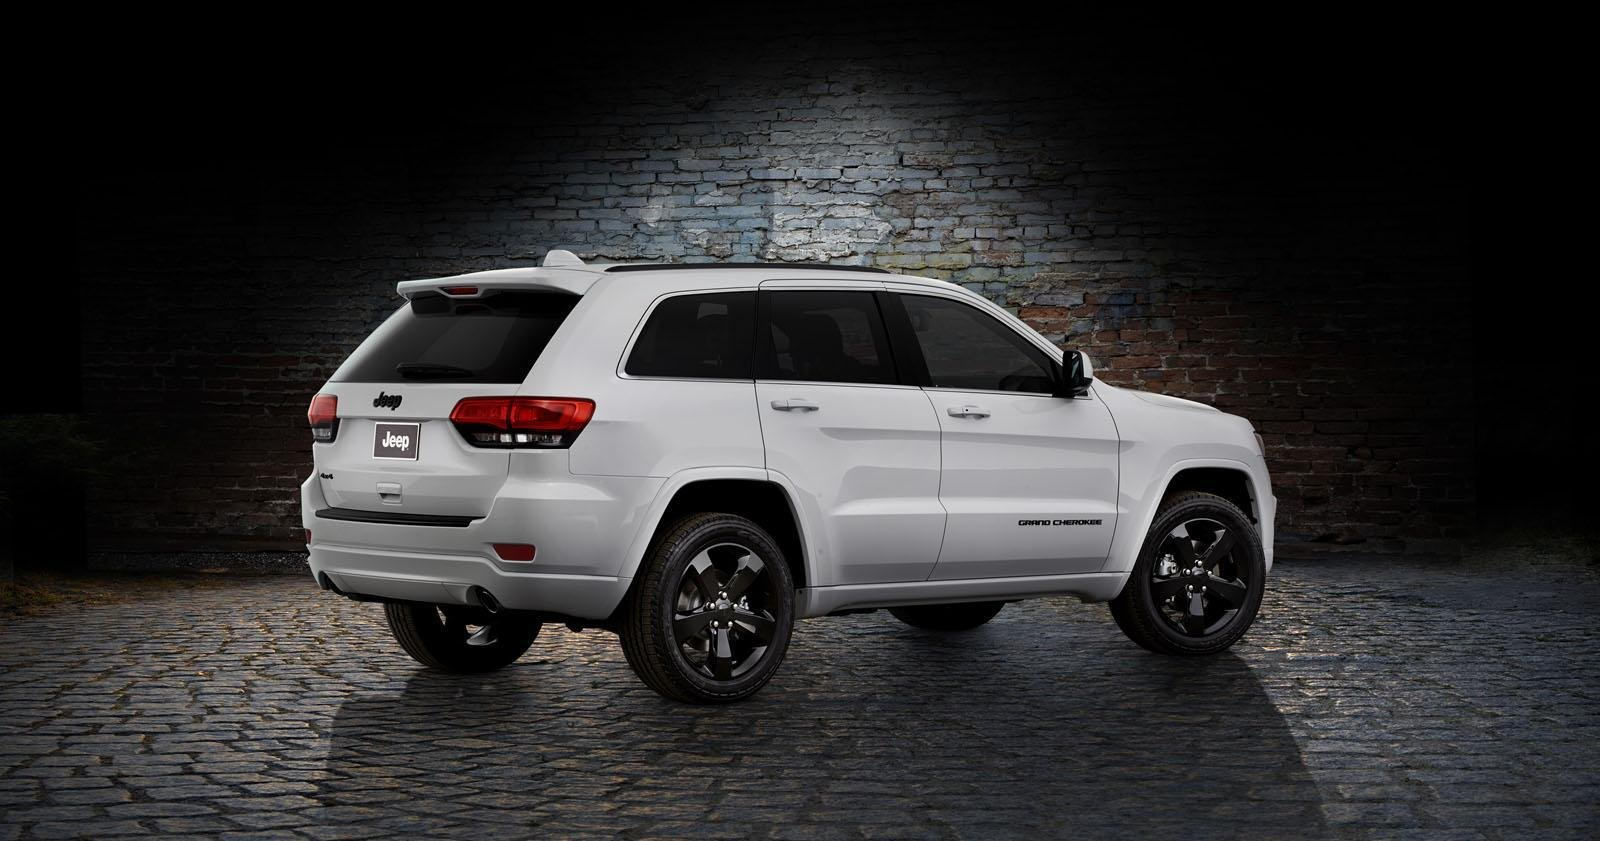 2014 jeep grand cherokee altitude picture 539468 car review top. Cars Review. Best American Auto & Cars Review